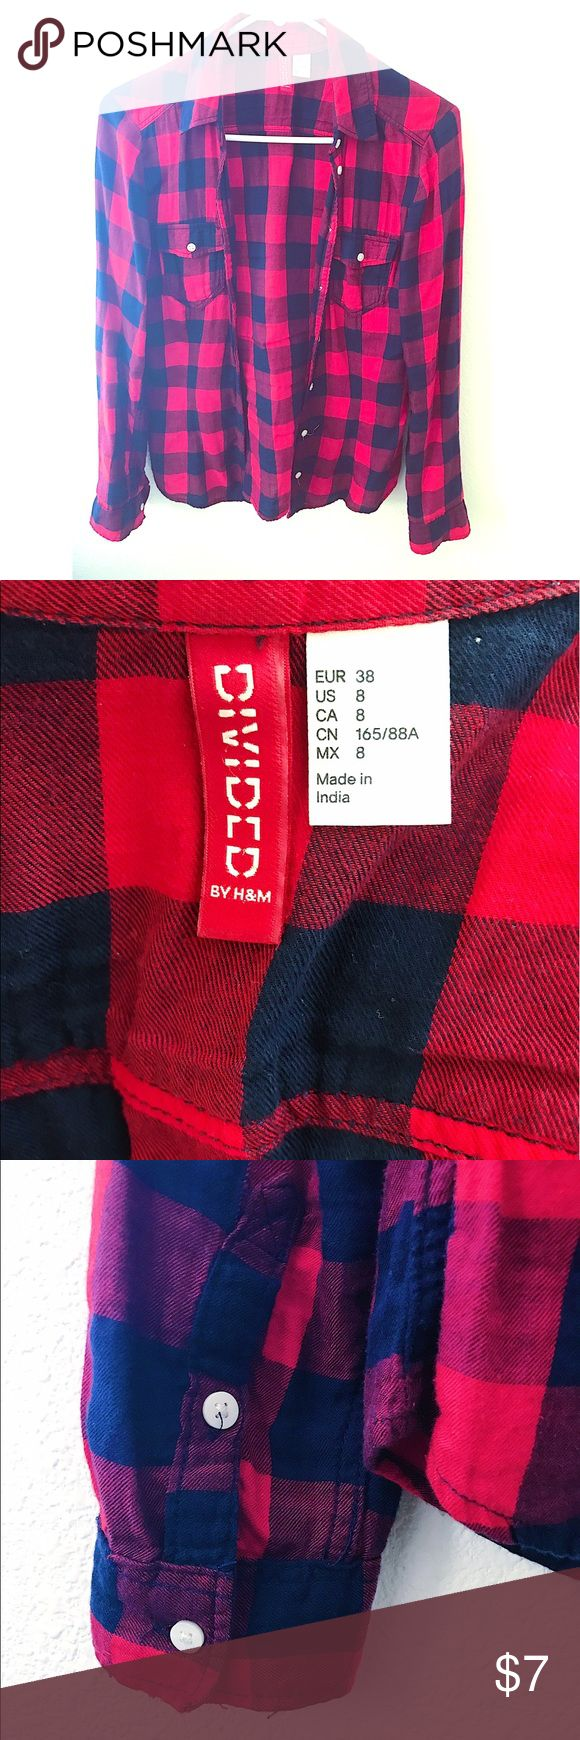 Red Plaid Shirts H&M red plaid shirts! I've loved it but I've grown out of it. The size shrunk so it's more of like size 4-6 than 8. No damage or stains. Still in great condition! H&M Tops Button Down Shirts